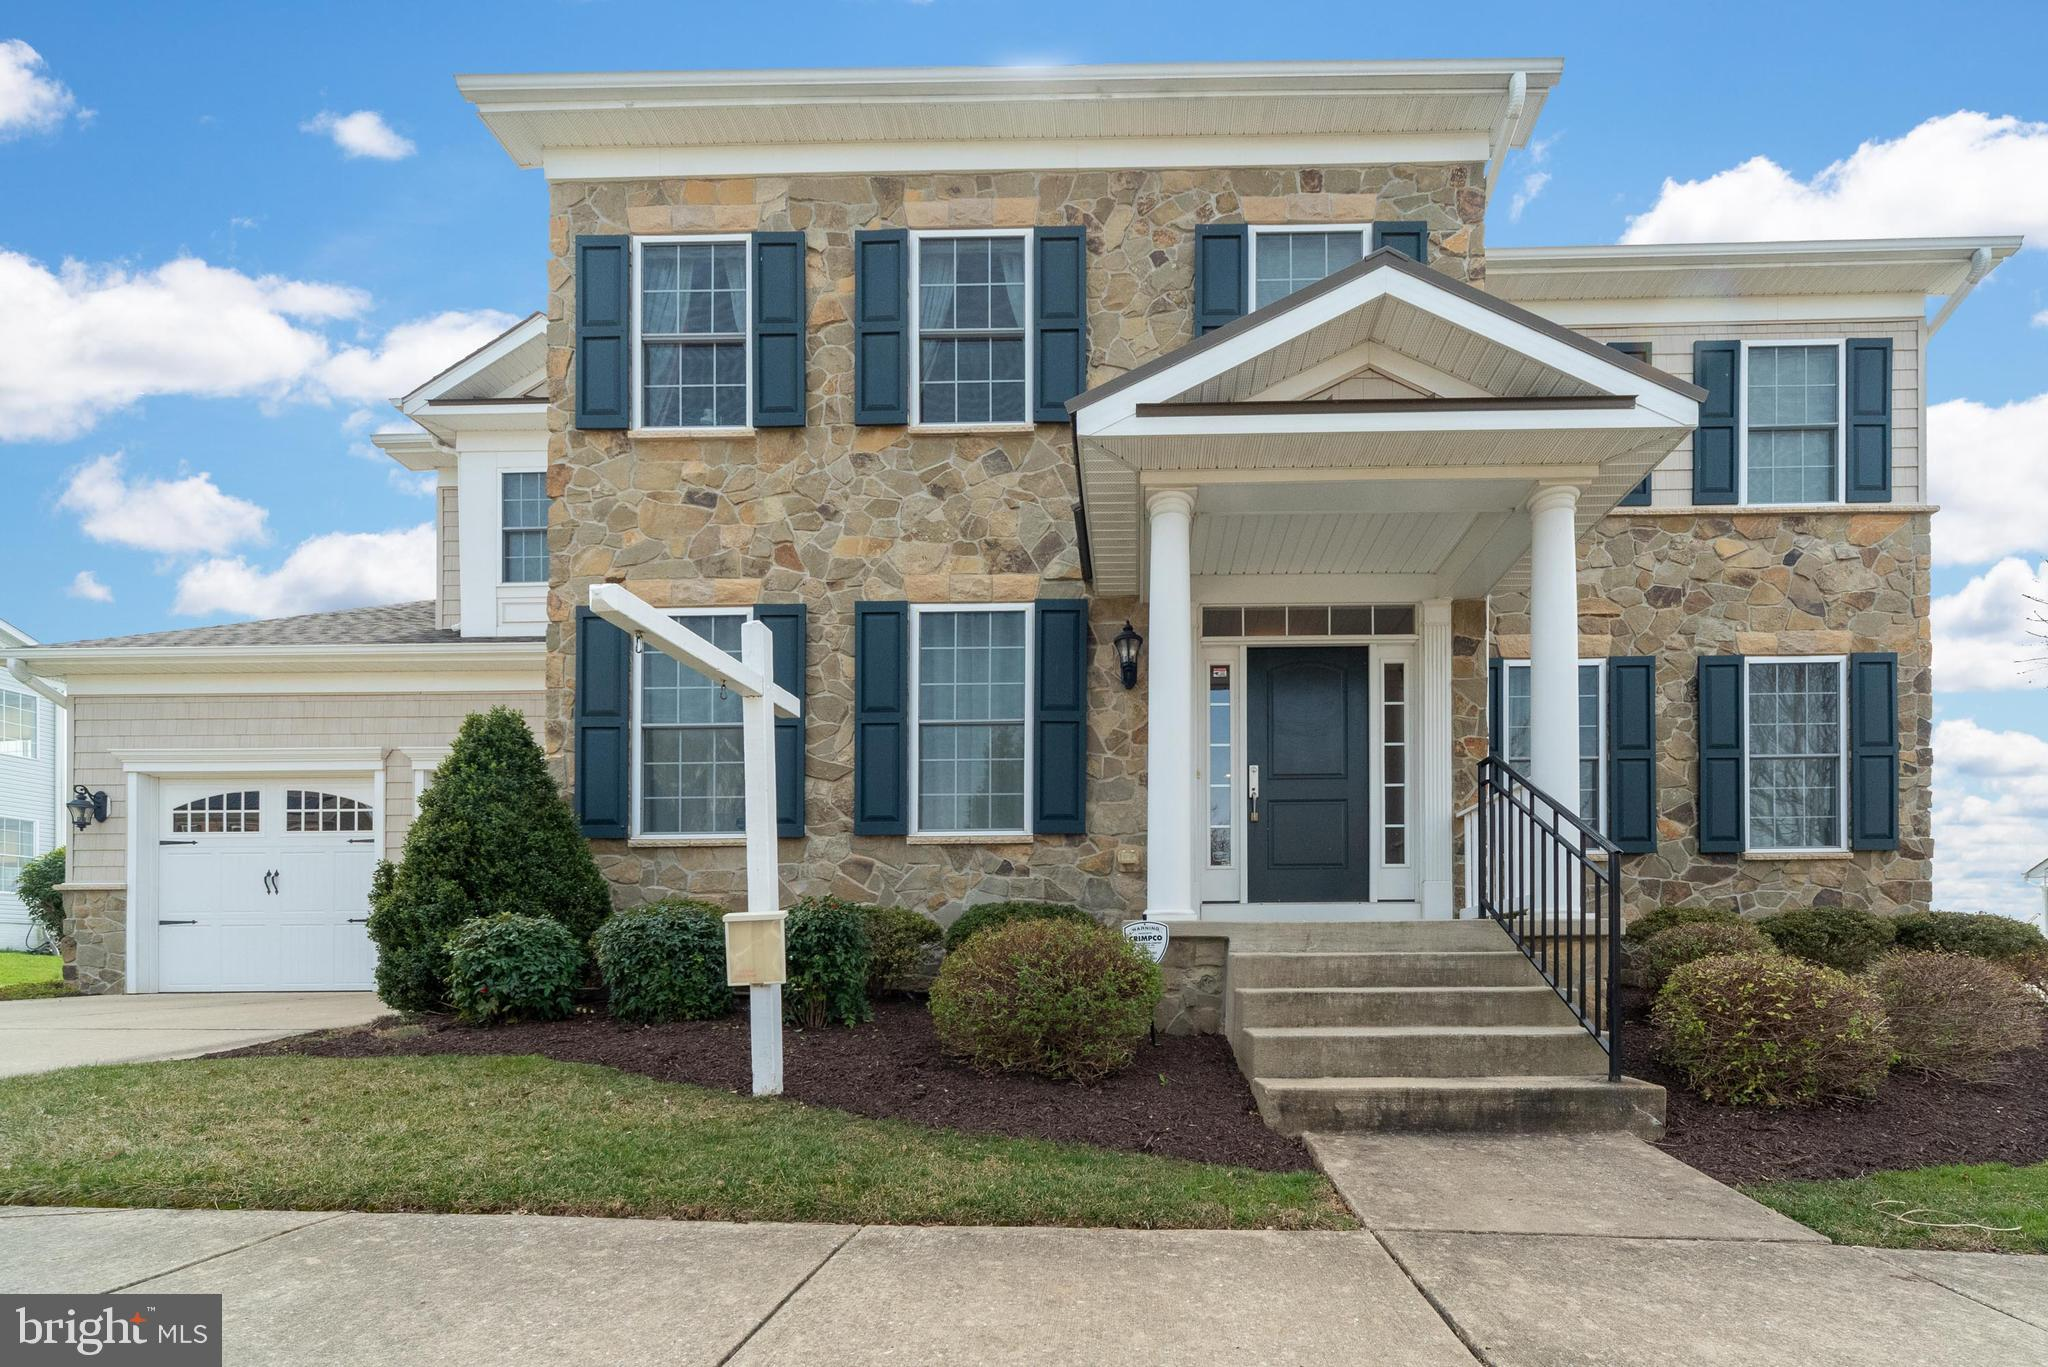 5139 SCENIC DRIVE, PERRY HALL, MD 21128